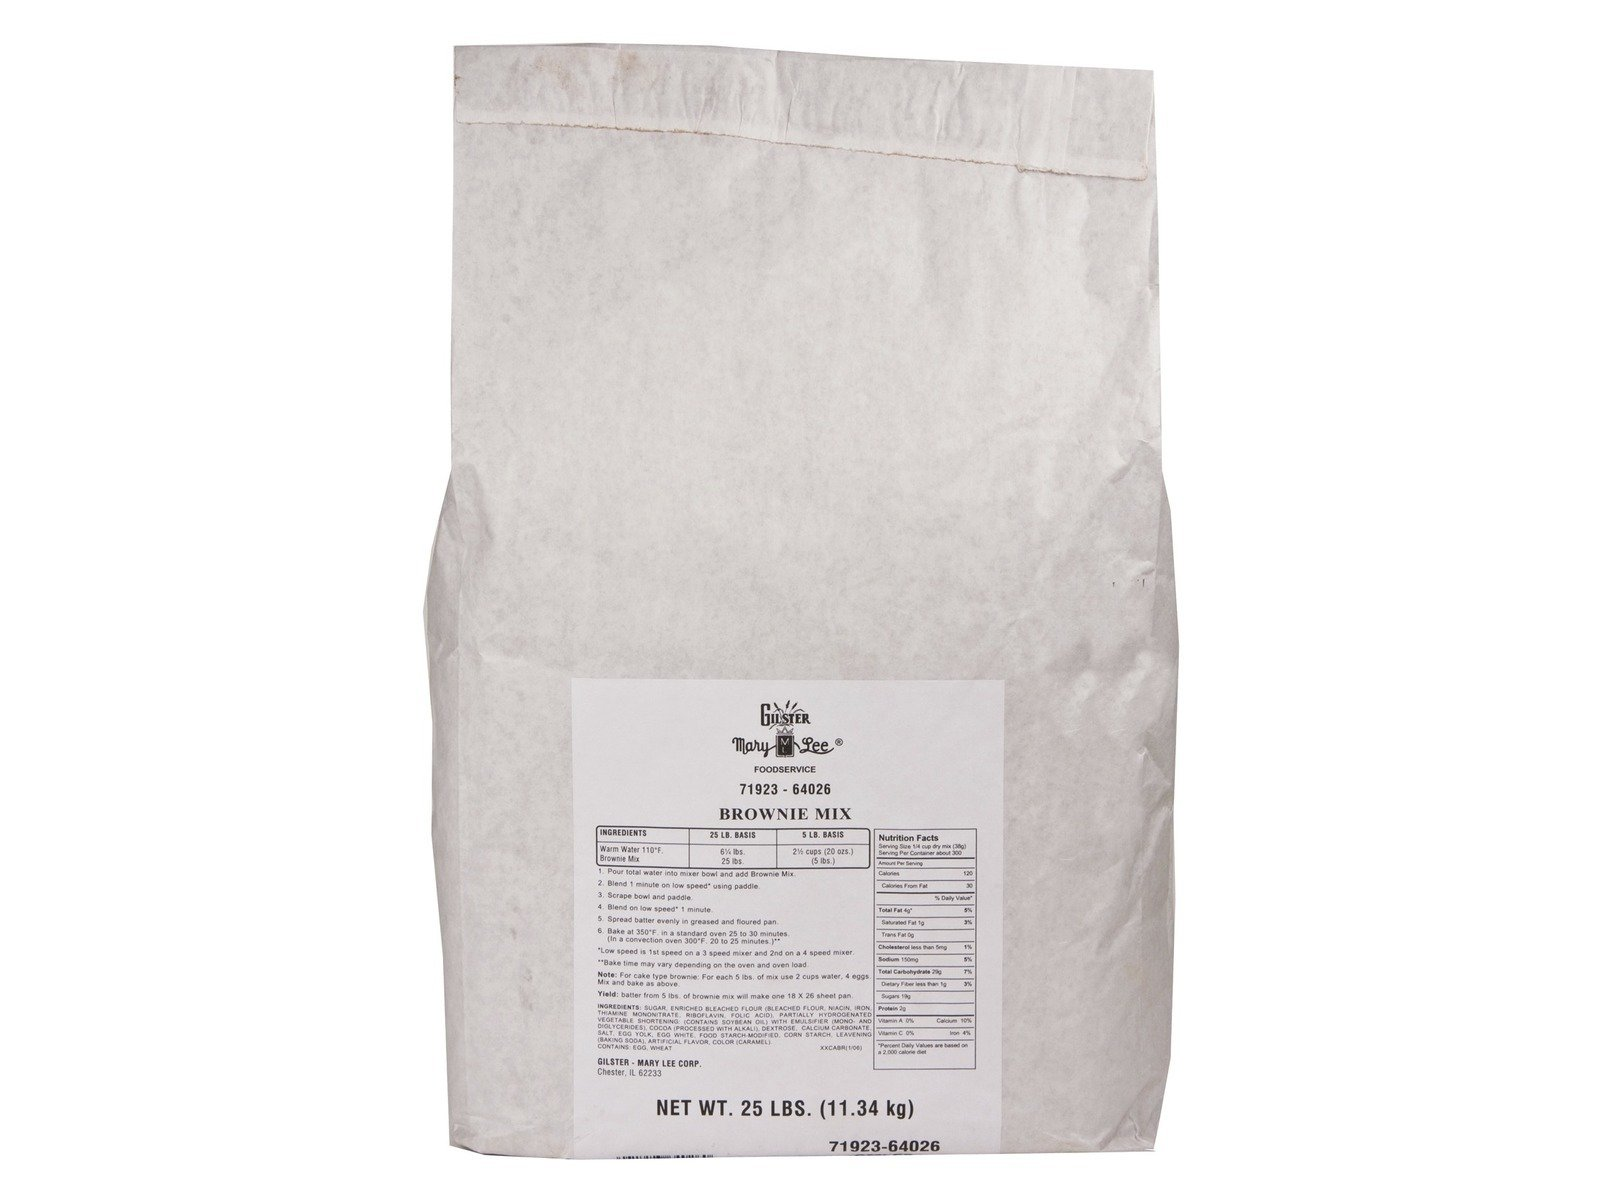 Bulk Brownie Mix - One Pound - Gilster Mary Lee